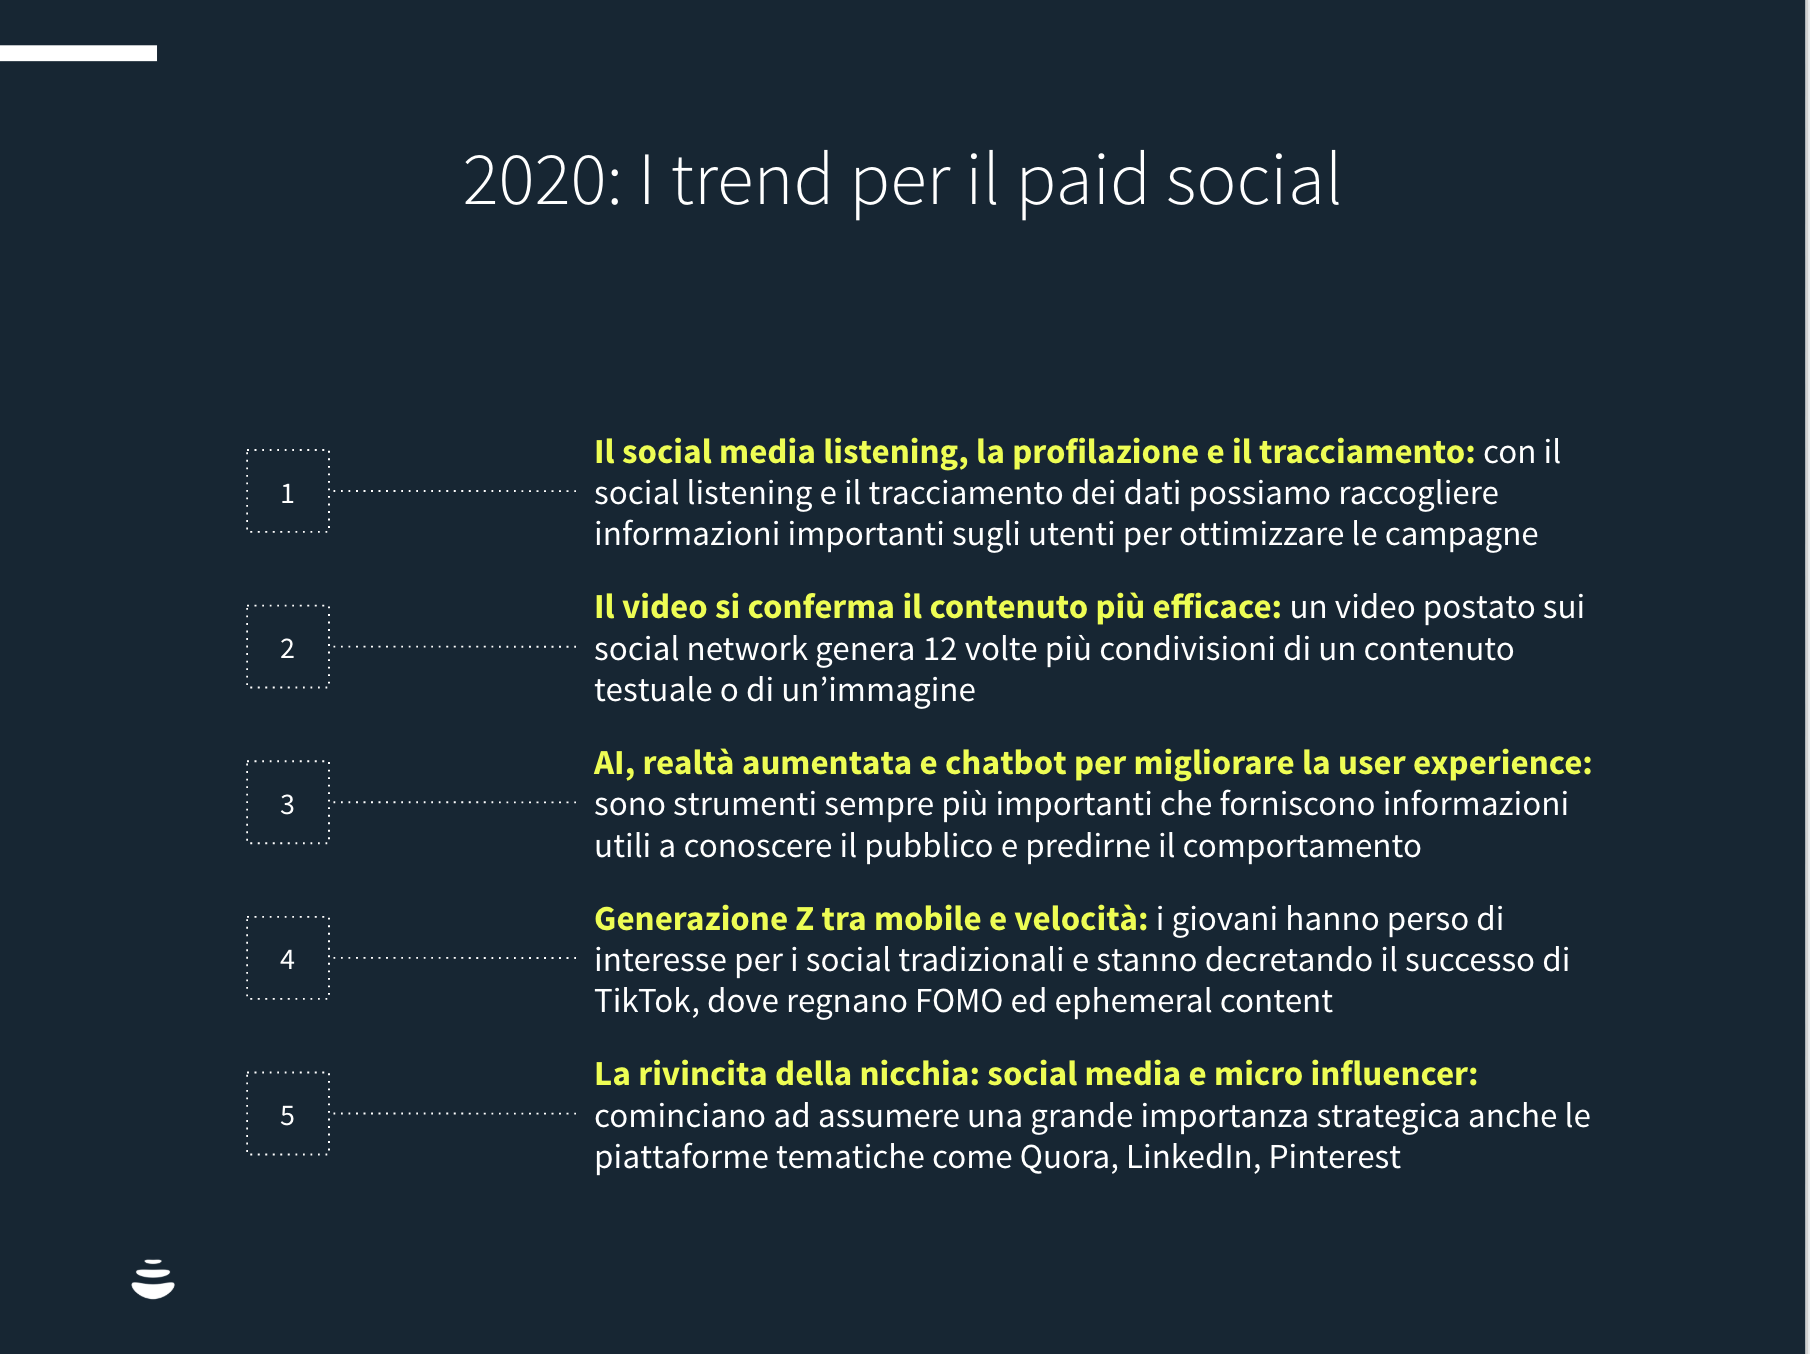 paid social trend 2020